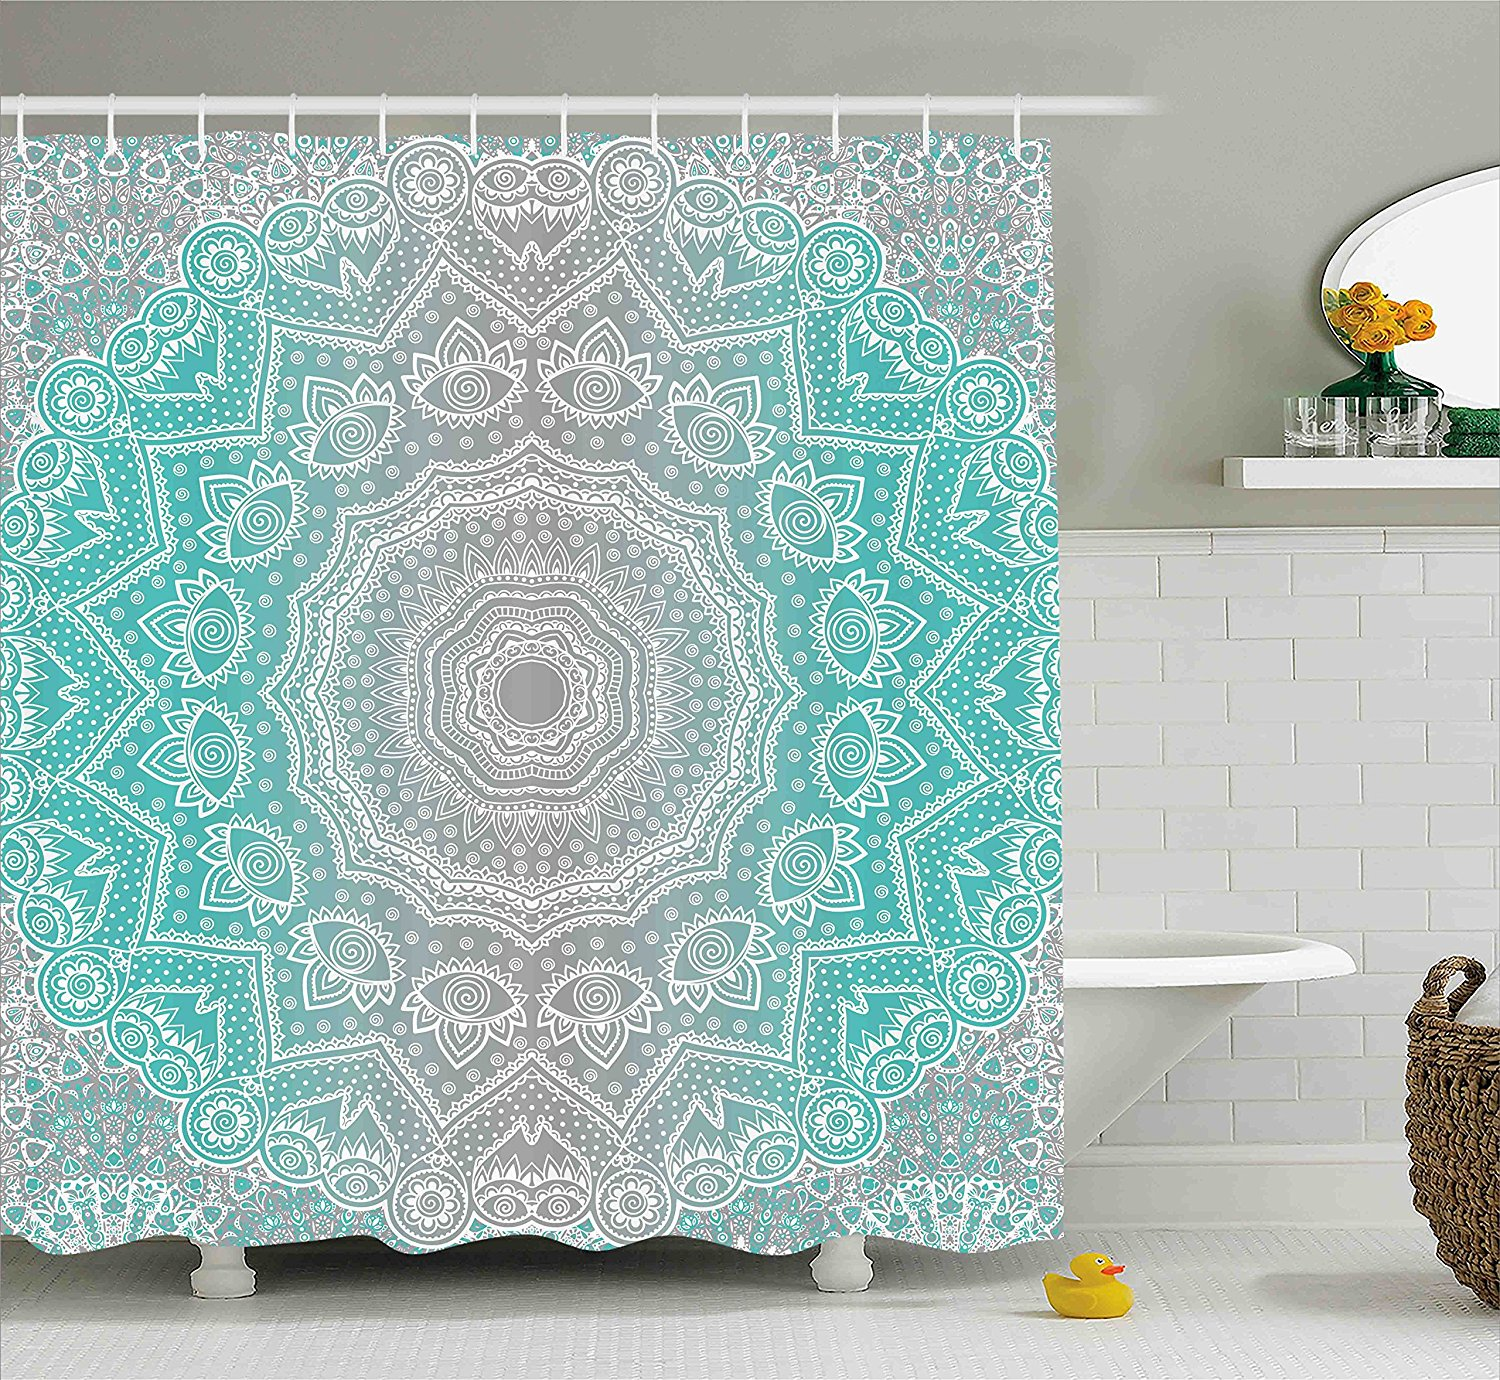 Grey and Turquoise Shower Curtain by Ambesonne, Primitive Spiritual Essence and Universe Harmony Mandala Ombre Art, Fabric Bathroom Decor Set with Hooks, 70 Inches, Turquoise Grey